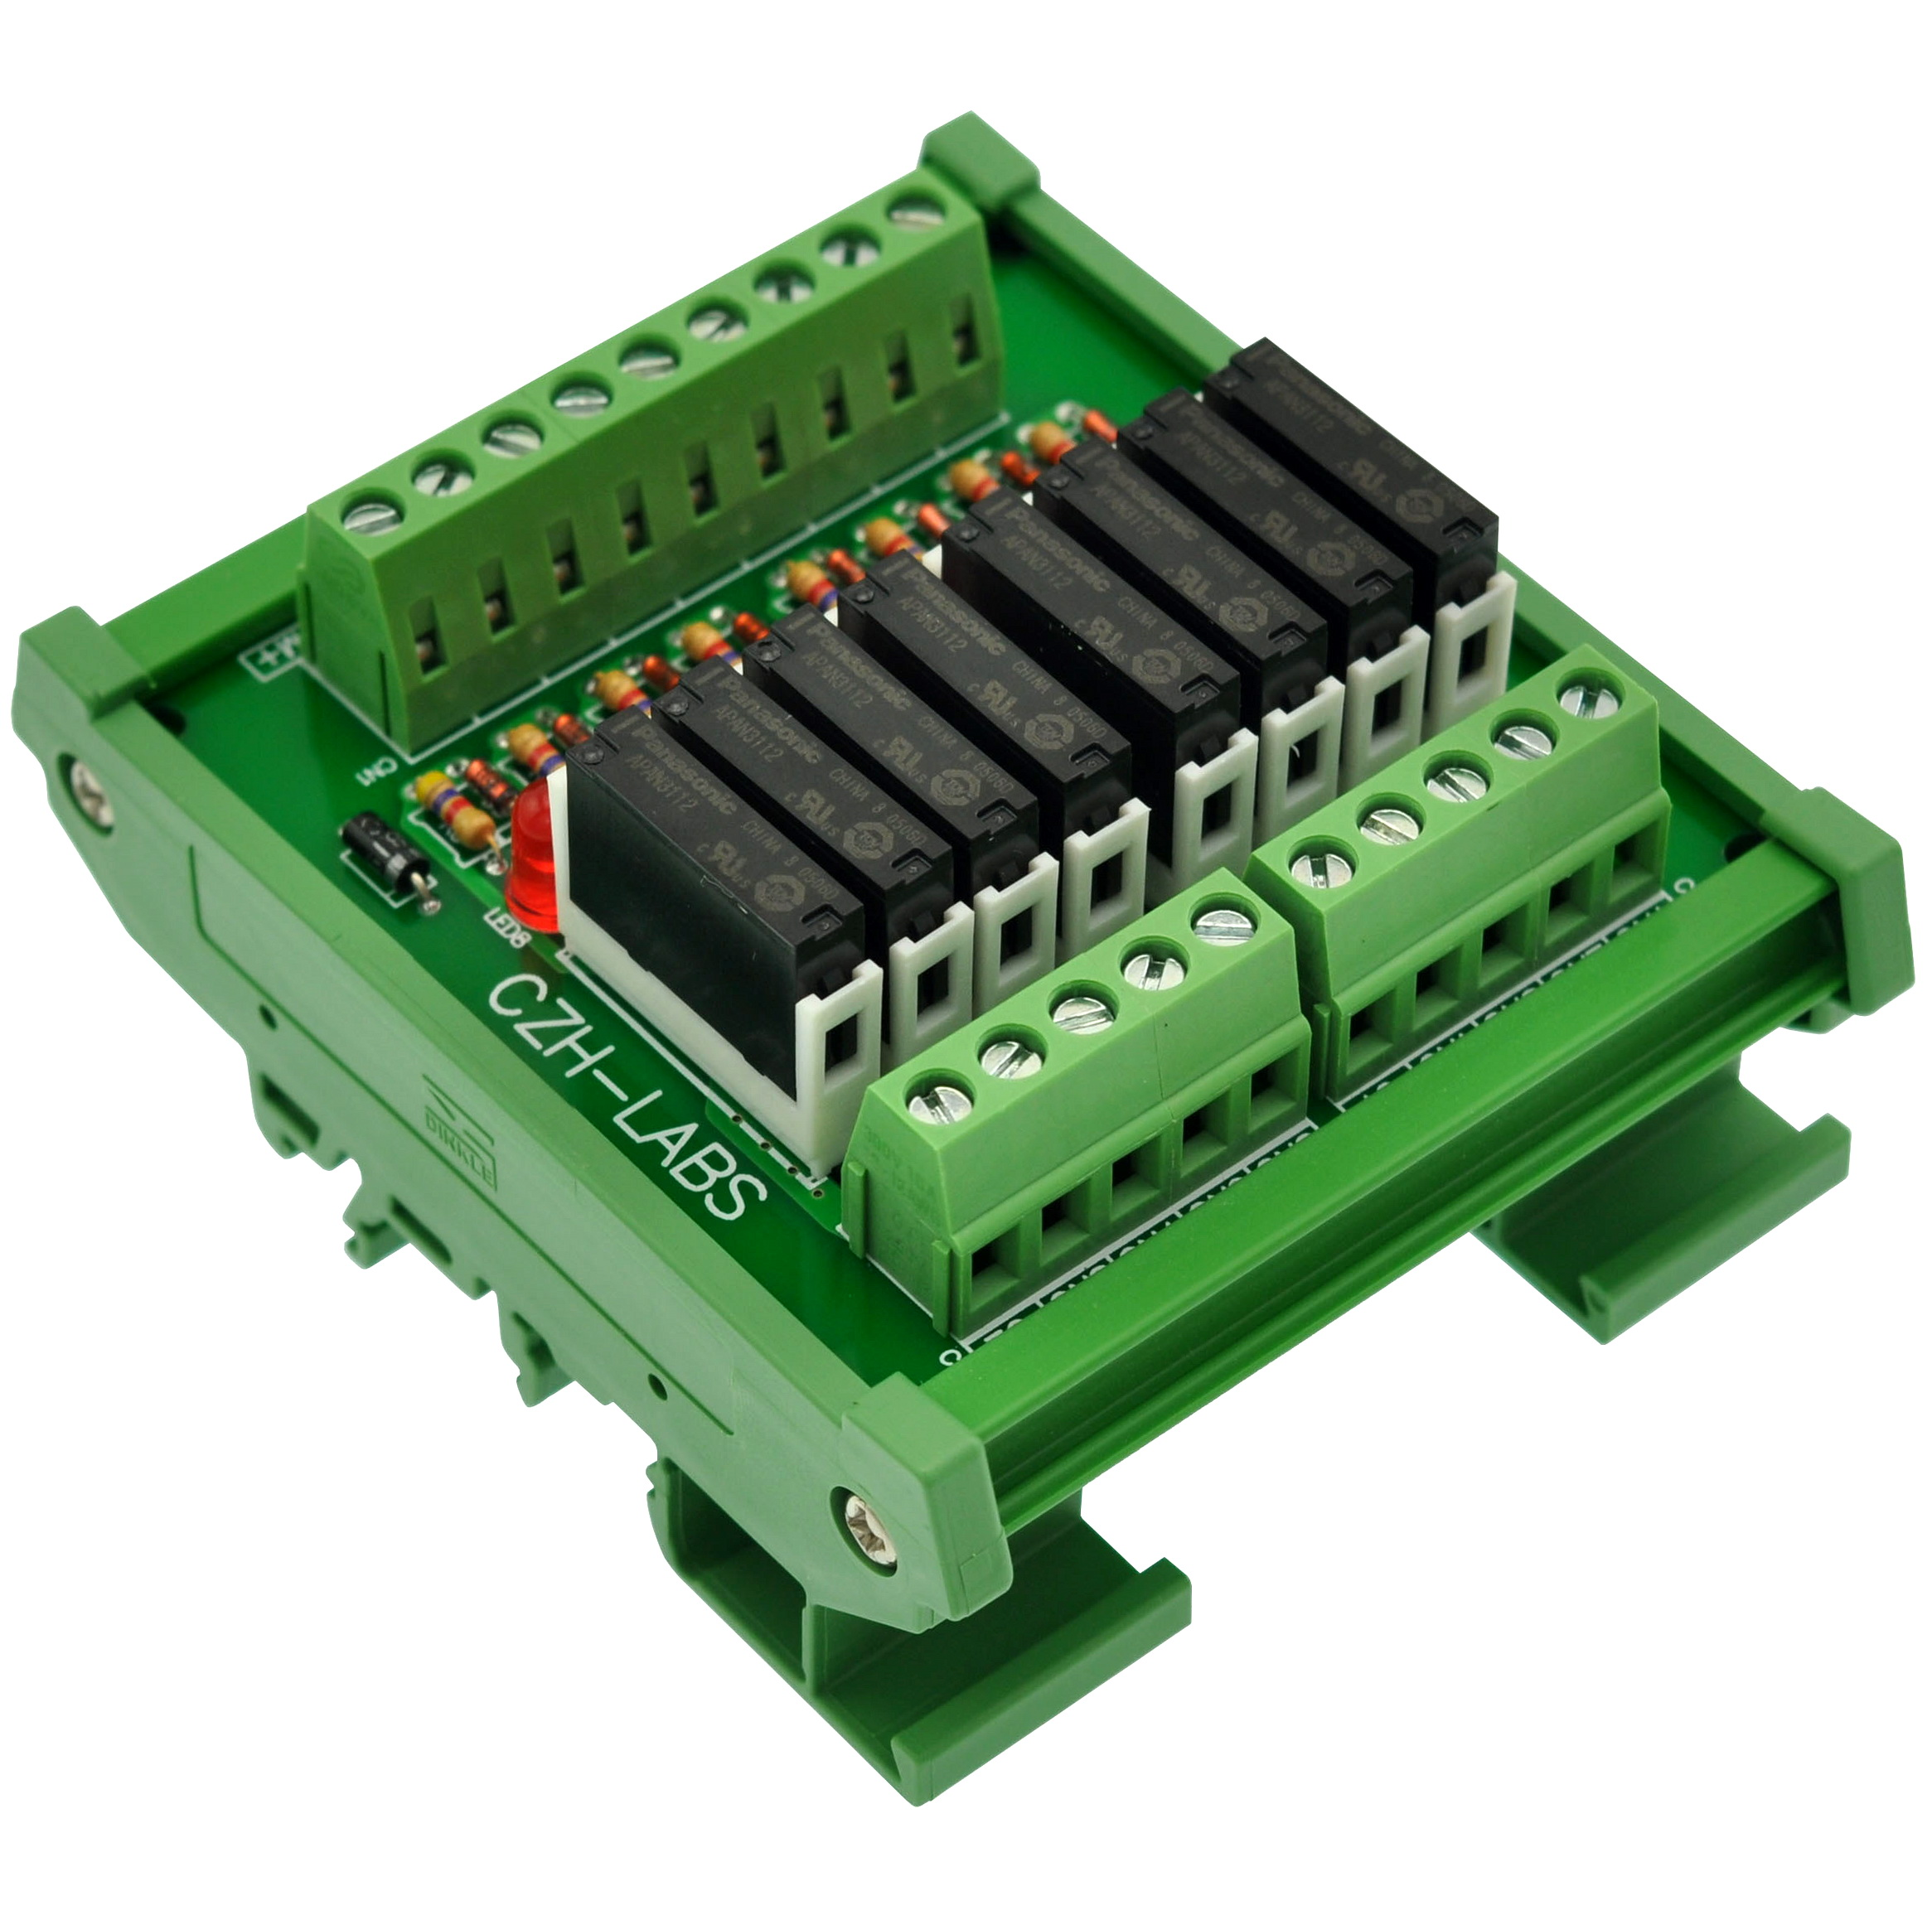 Image 2 - Slim DIN Rail Mount DC12V Sink/NPN 8 SPST NO 5A Power Relay Module, PA1a 12V-in Electronics Stocks from Electronic Components & Supplies